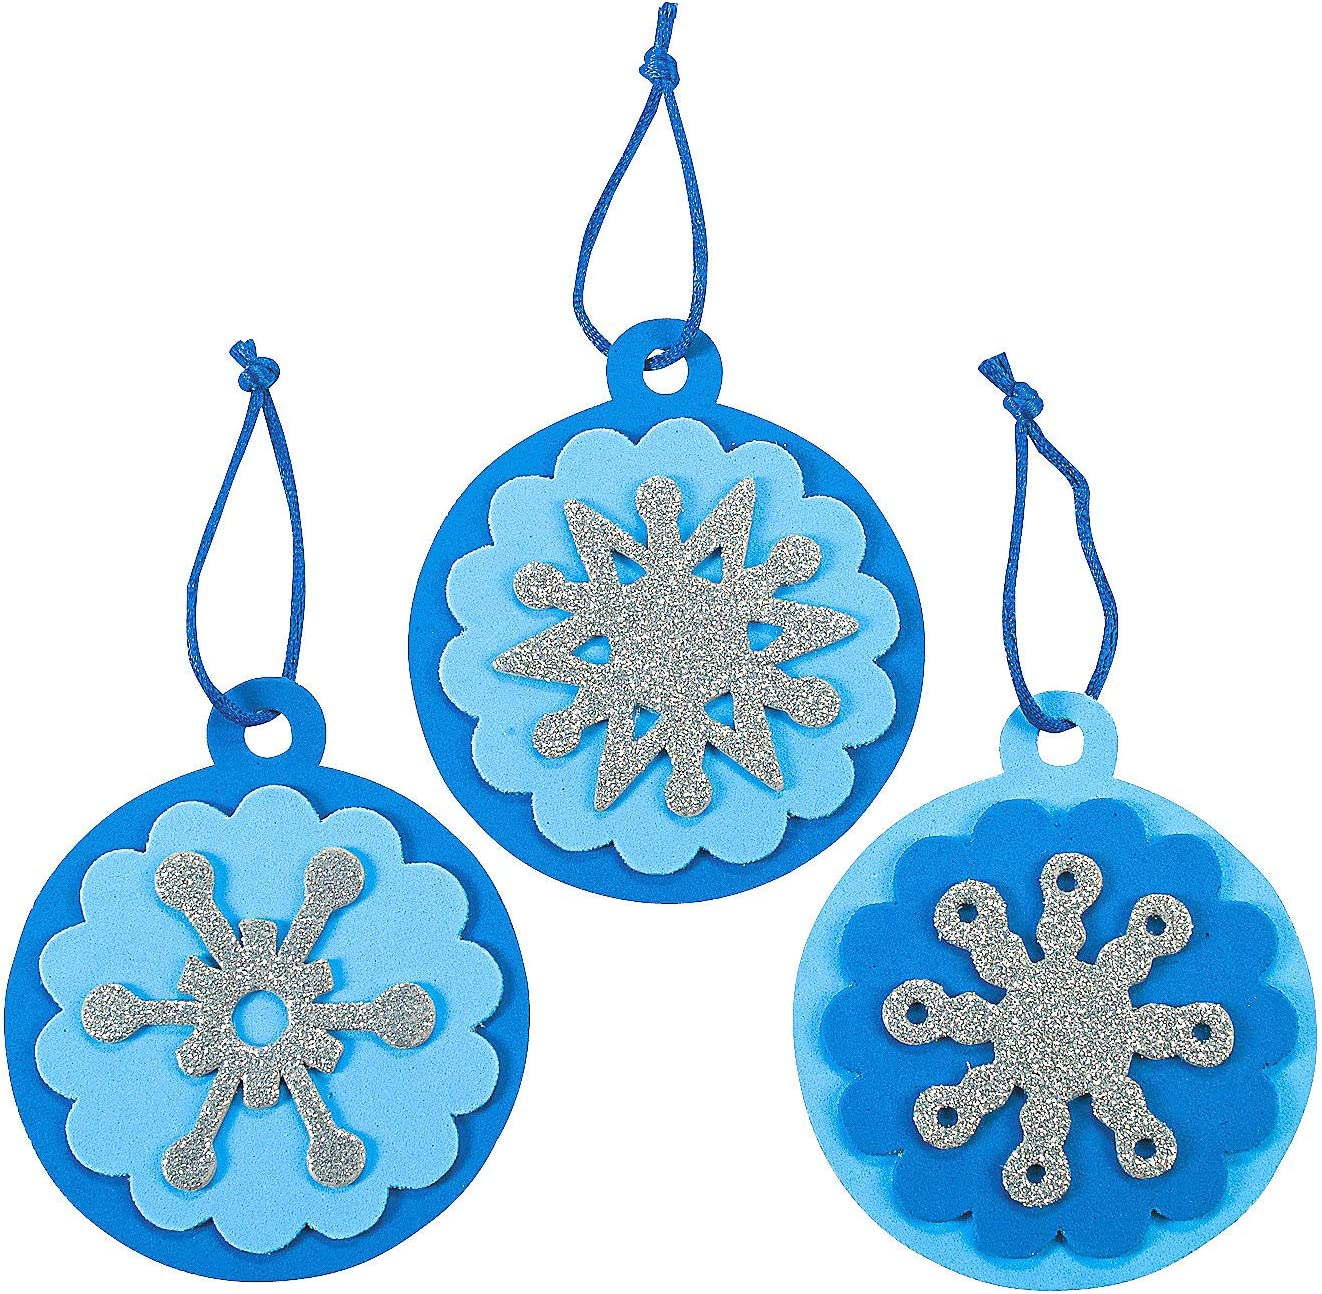 Snowflake Ornament Craft Kits Makes 24 Assorted Designs